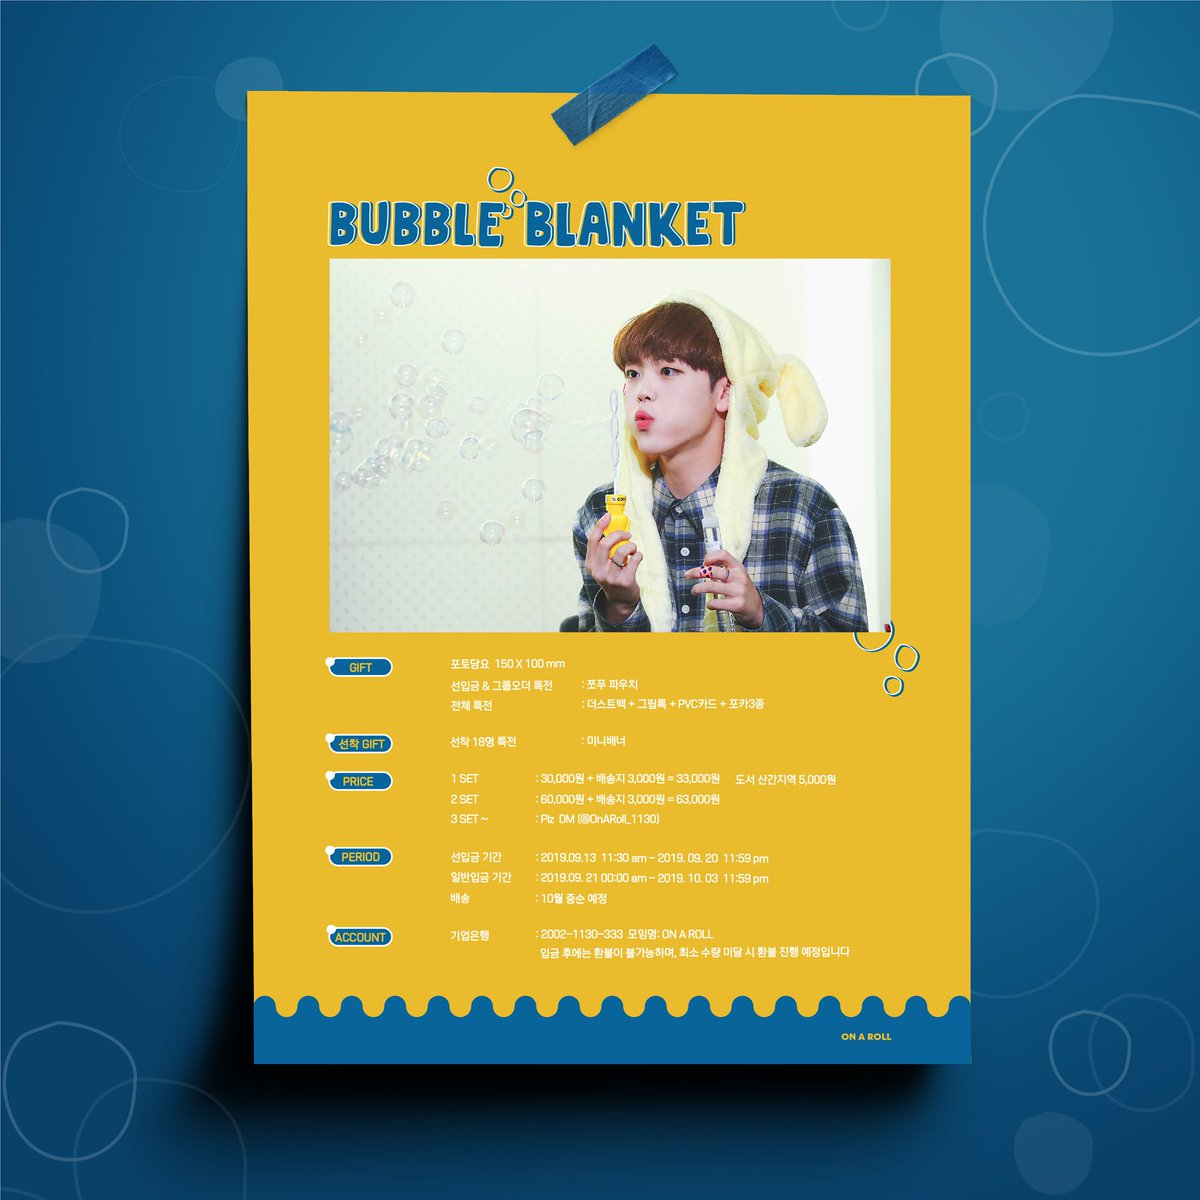 [USA GO] HELP RT!!!!  #X1 Song Hyeongjun 'Bubble Blanket' by @OnARoll_1130   ☆ 31 USD ☆ Preorder Closes 9/18 @ 5 PM CST ☆ Closes 10/2 @ 5 PM CST ☆ Form:  https:// forms.gle/i6Ua8oerTRSZSt kB8  … <br>http://pic.twitter.com/jFQ89YyCs9